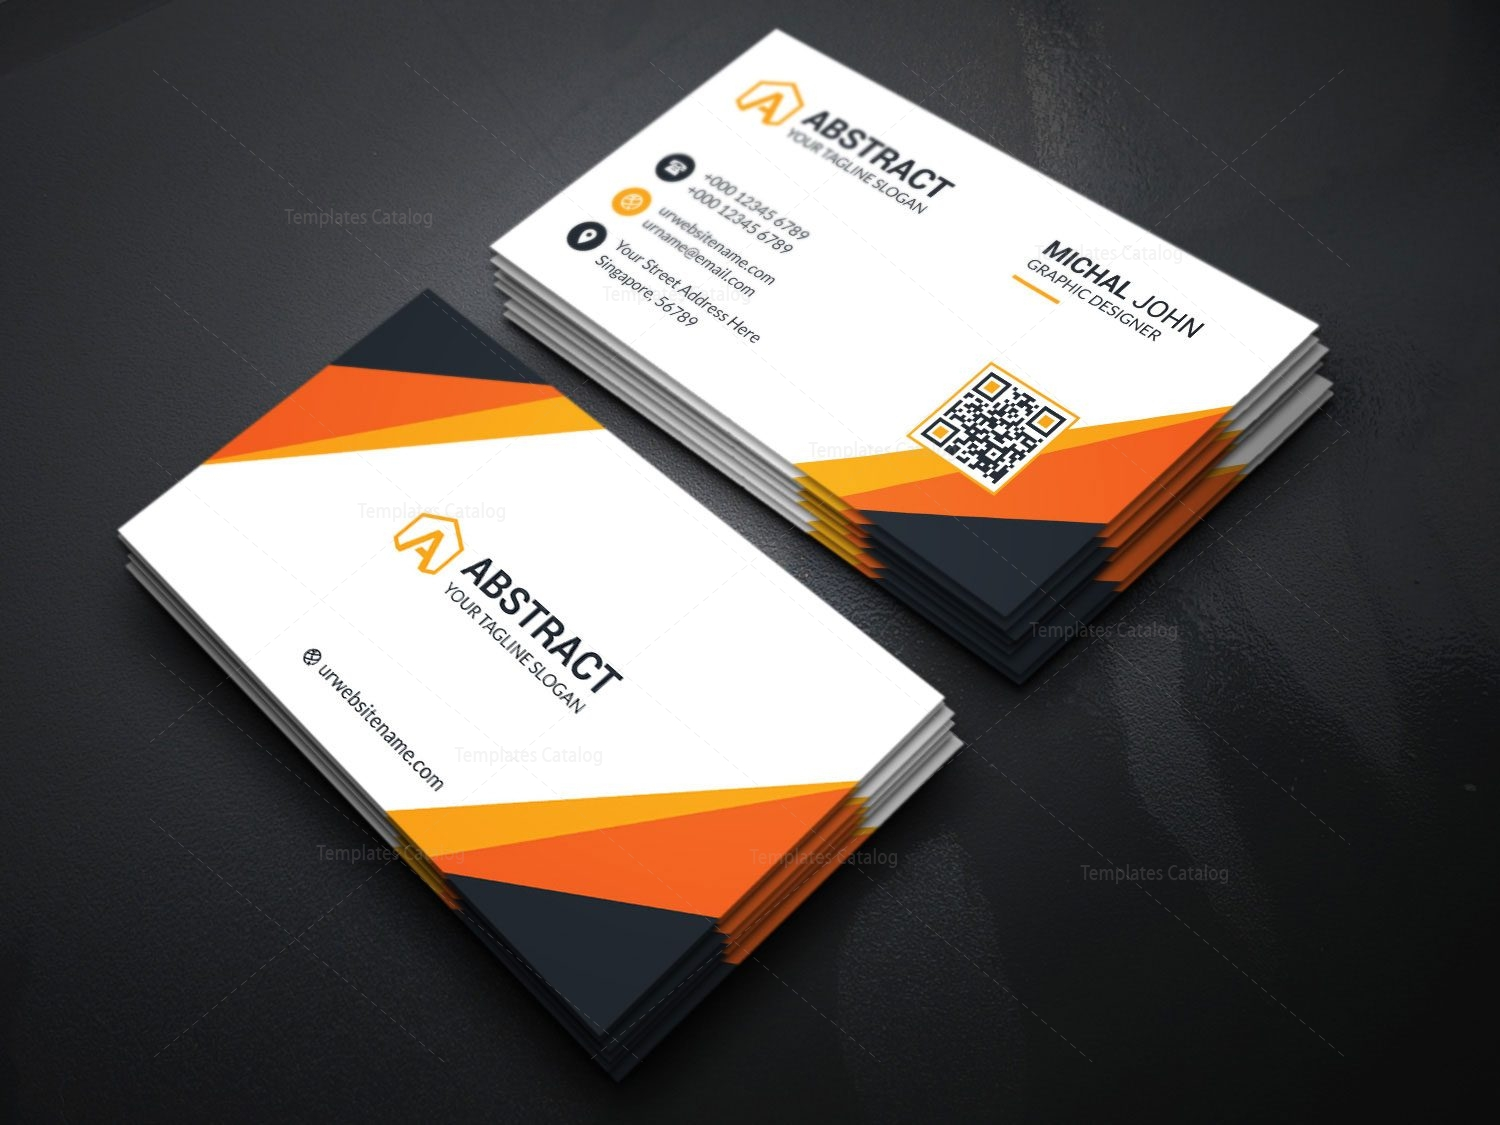 Visiting card template for companies 000175 template catalog visiting card template for companies 3 cheaphphosting Image collections